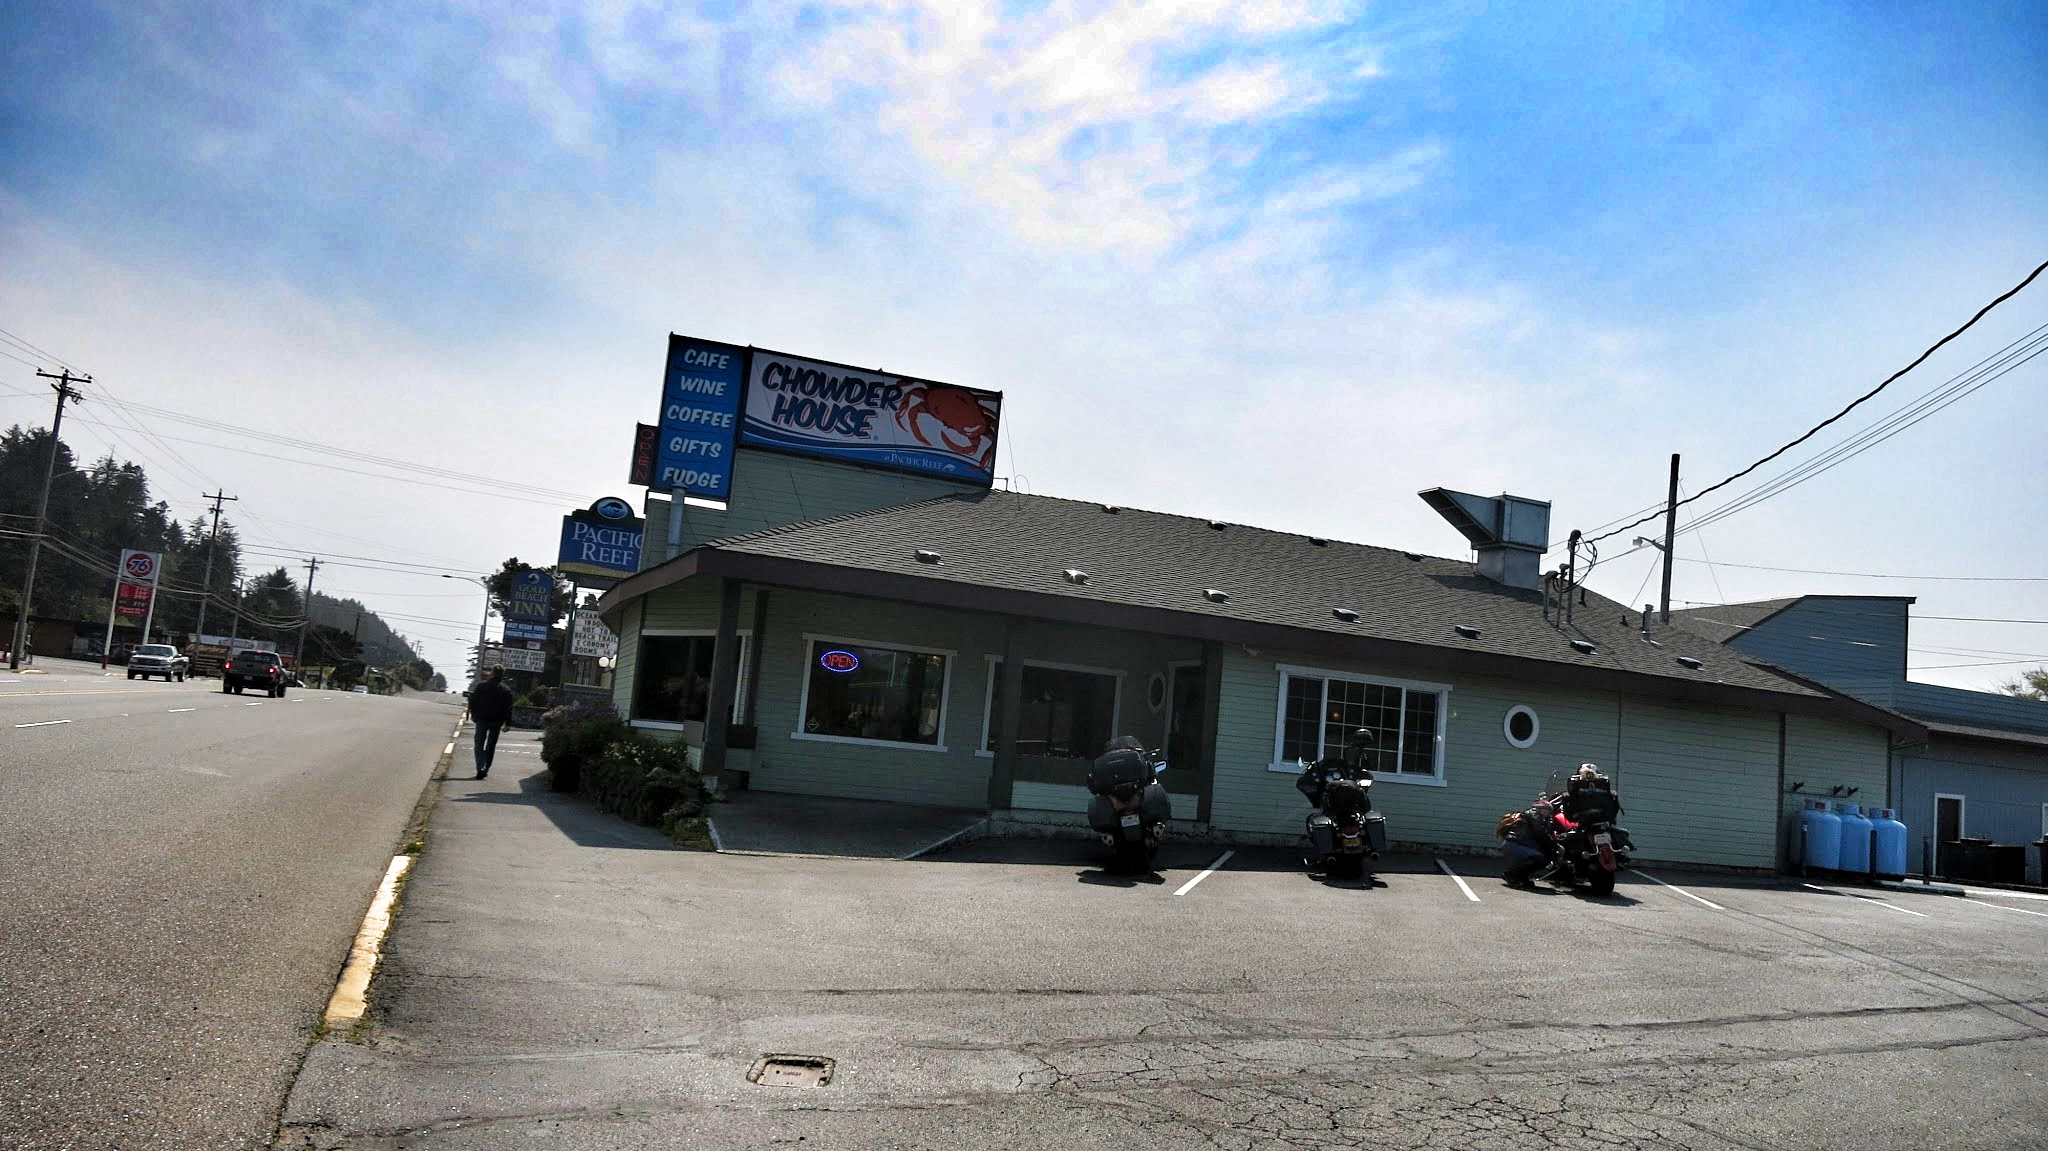 27 Chowder House Gold Beach Or Road Pickle